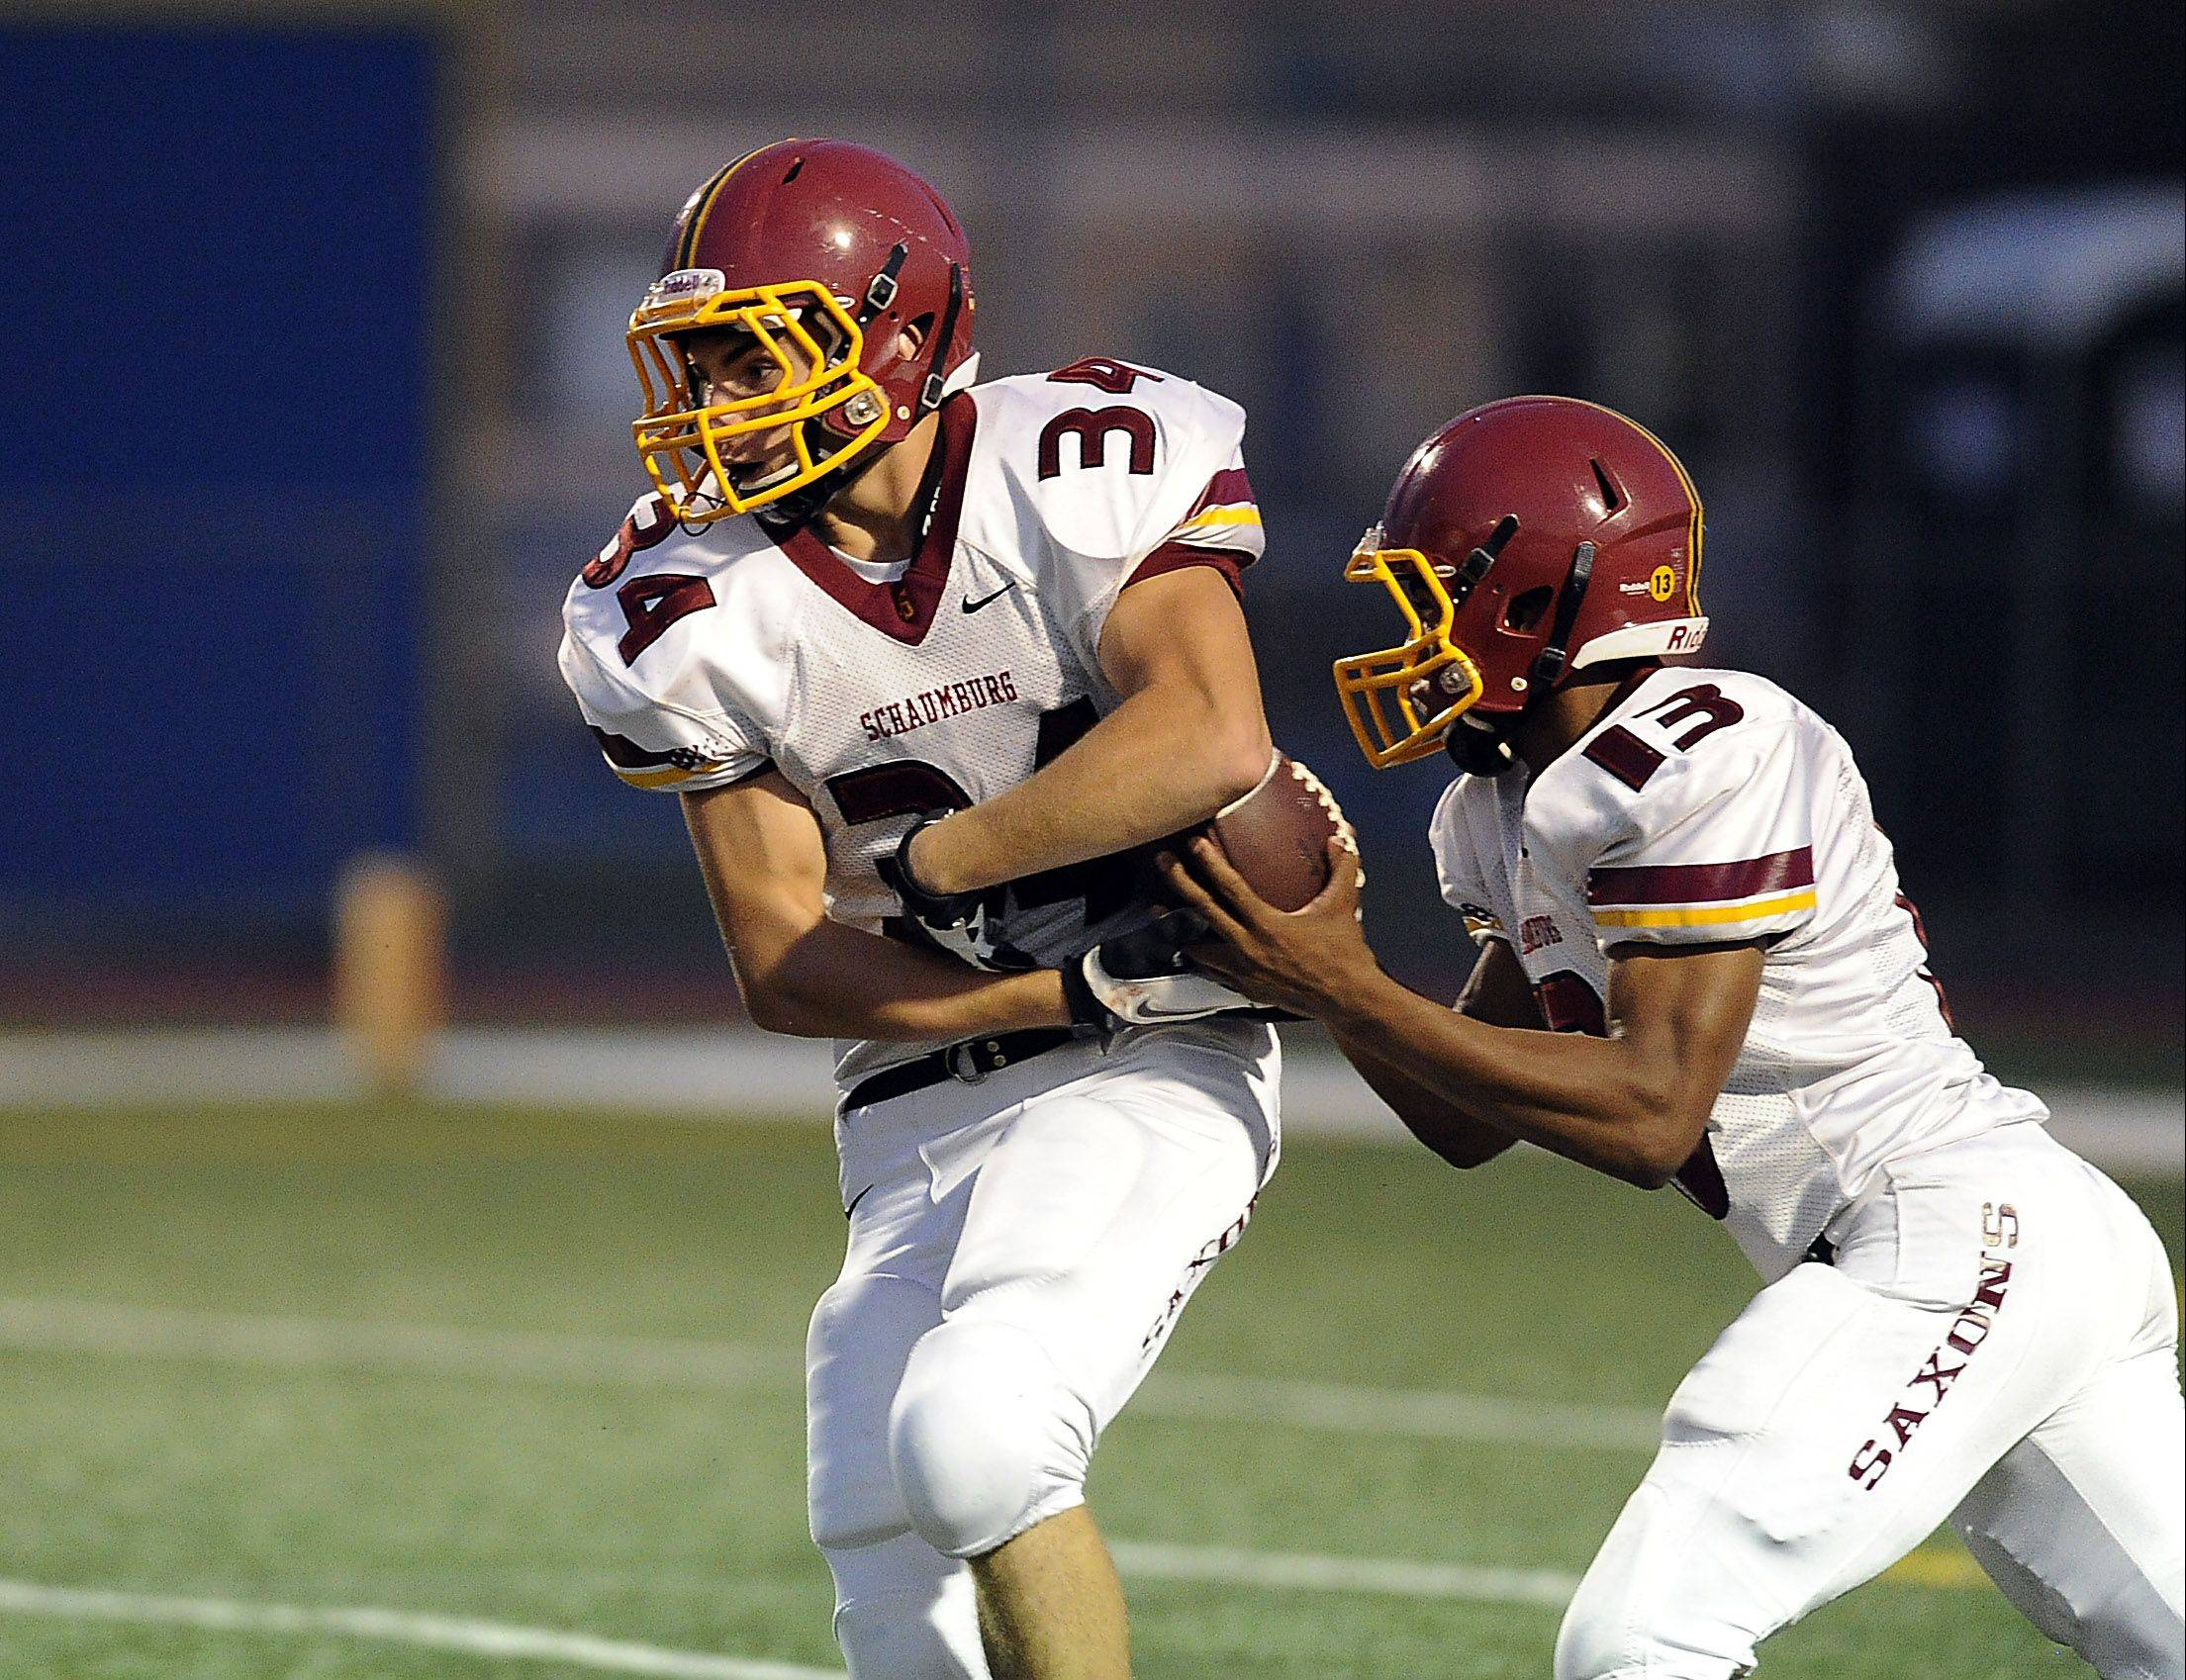 Schaumburg quarterback Stacey Smith fakes a handoff to Michael Jones before going for a score against Wheeling in Week 2. The Saxons host another MSL unbeaten, Barrington, on Friday.